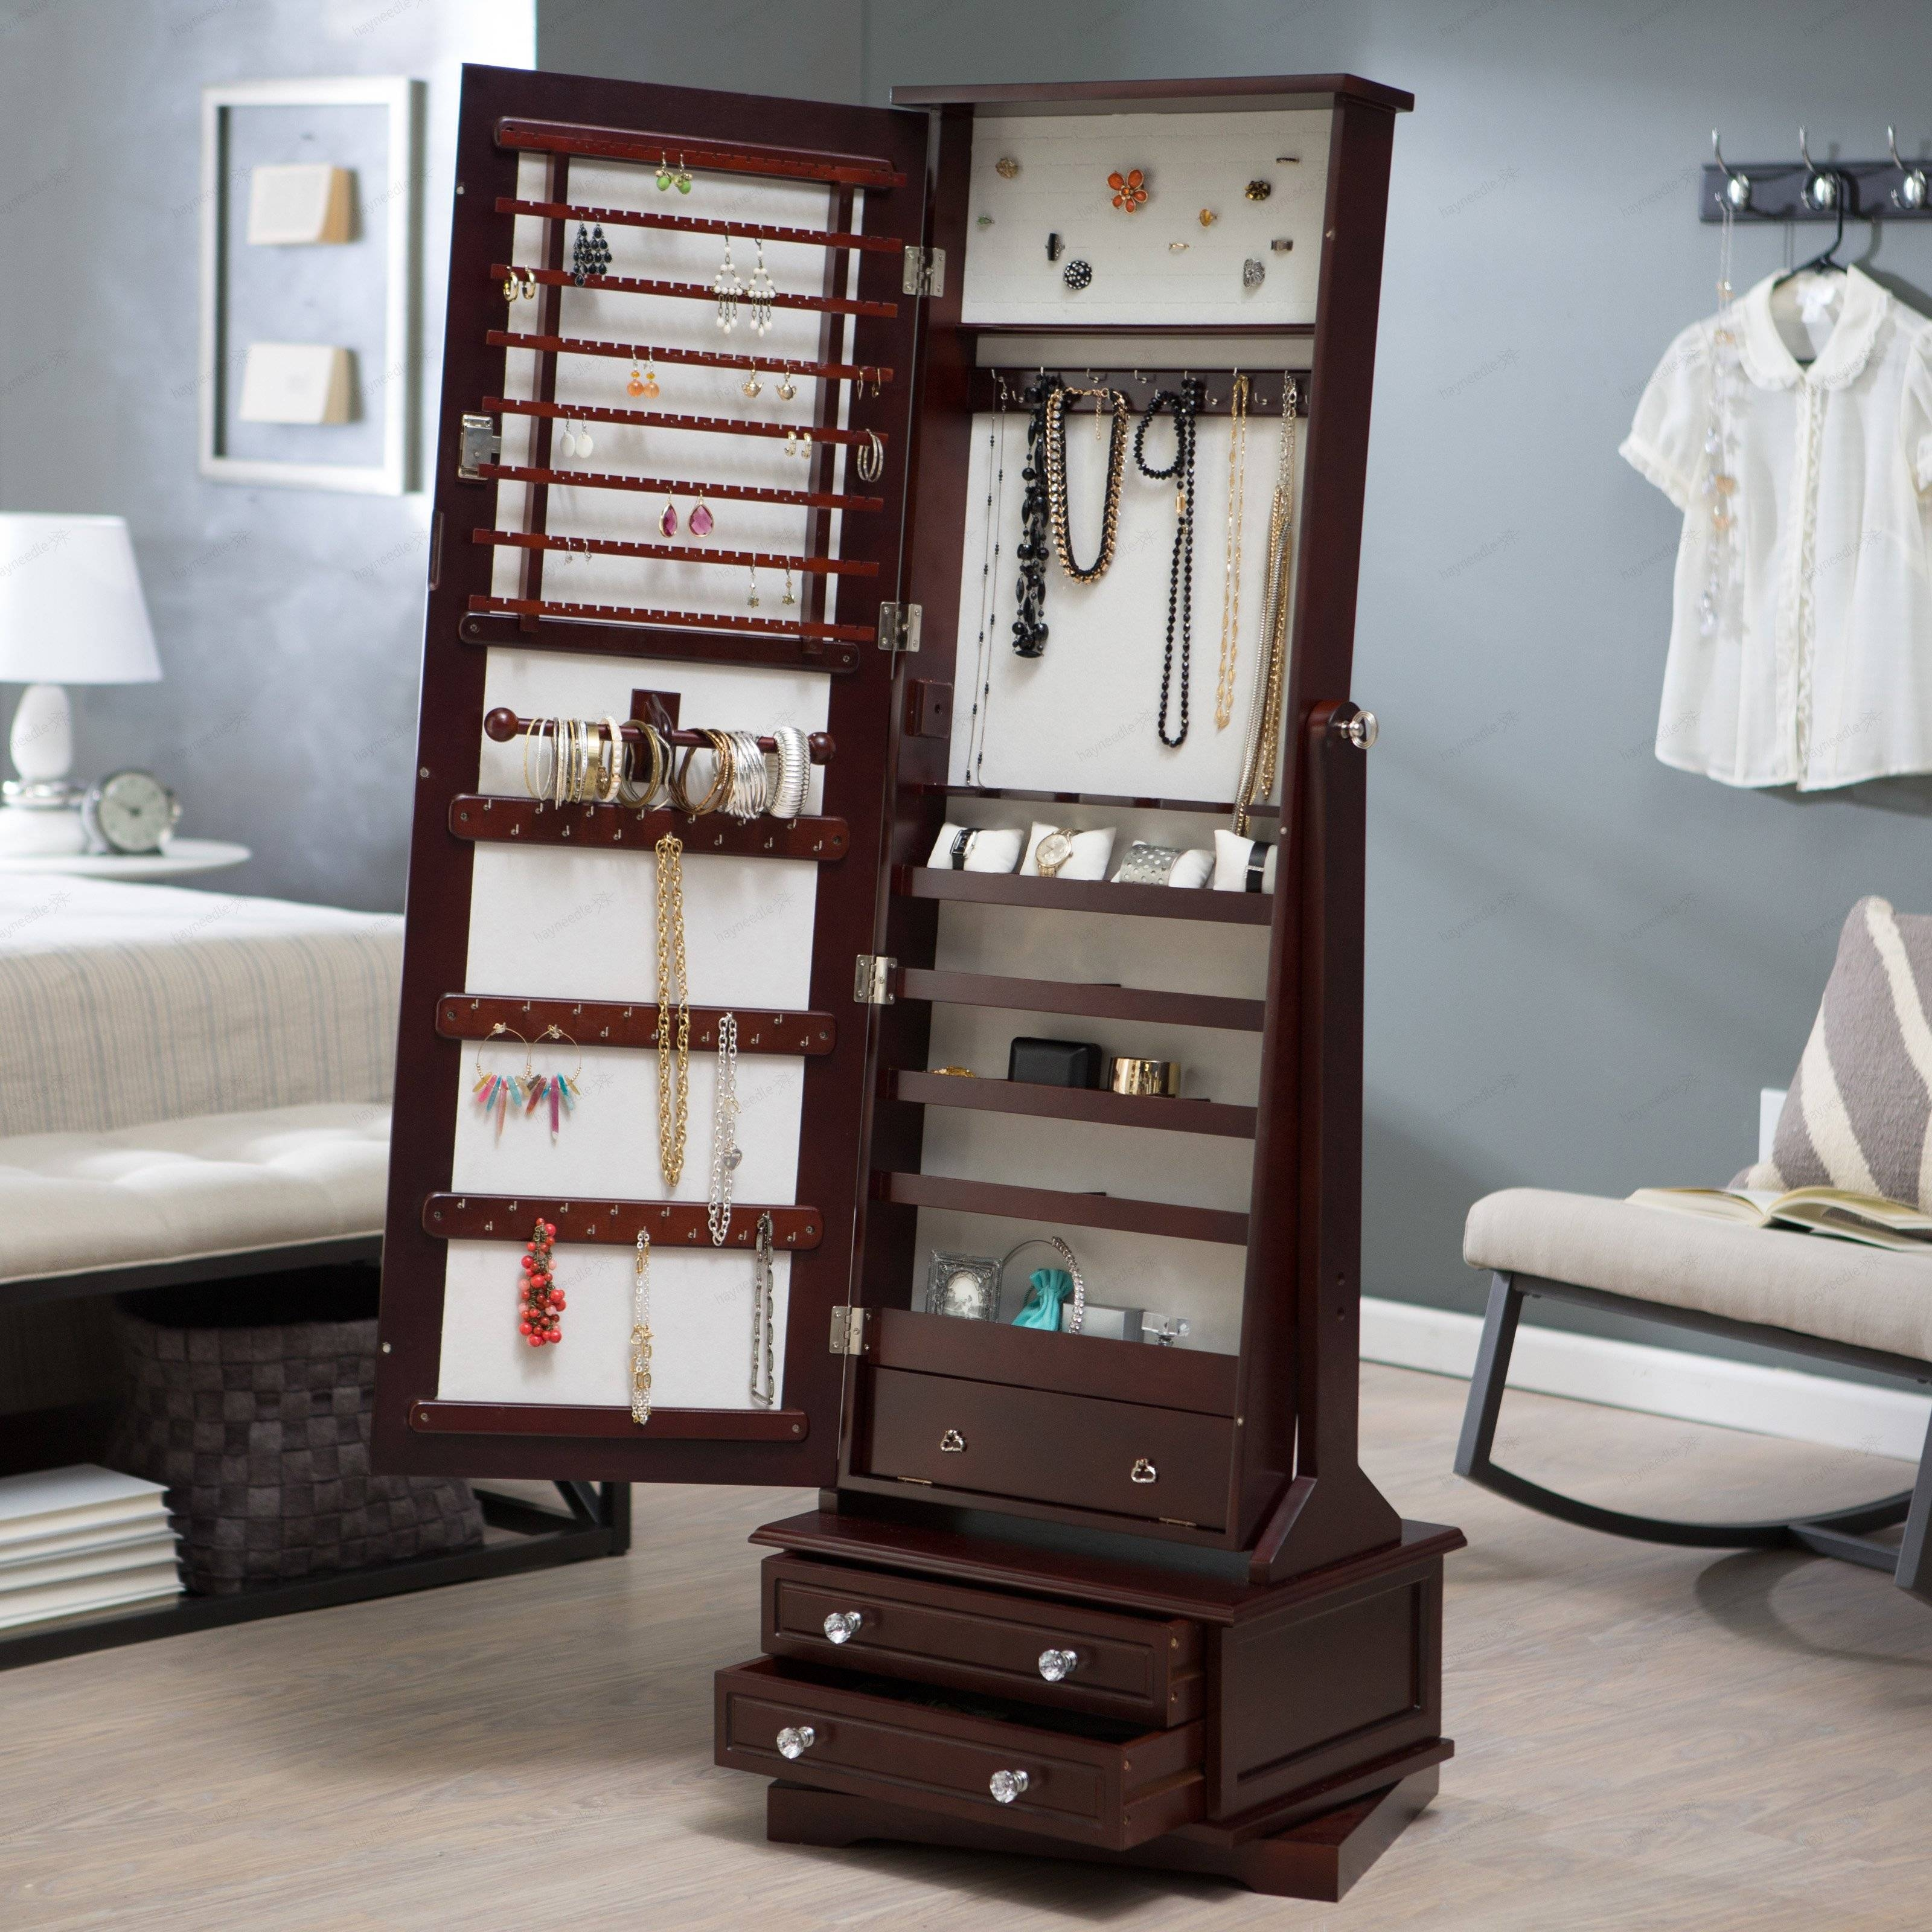 Belham Living Swivel Cheval Mirror Jewelry Armoire | Hayneedle With Regard To Free Standing Mirrors With Drawer (View 5 of 25)